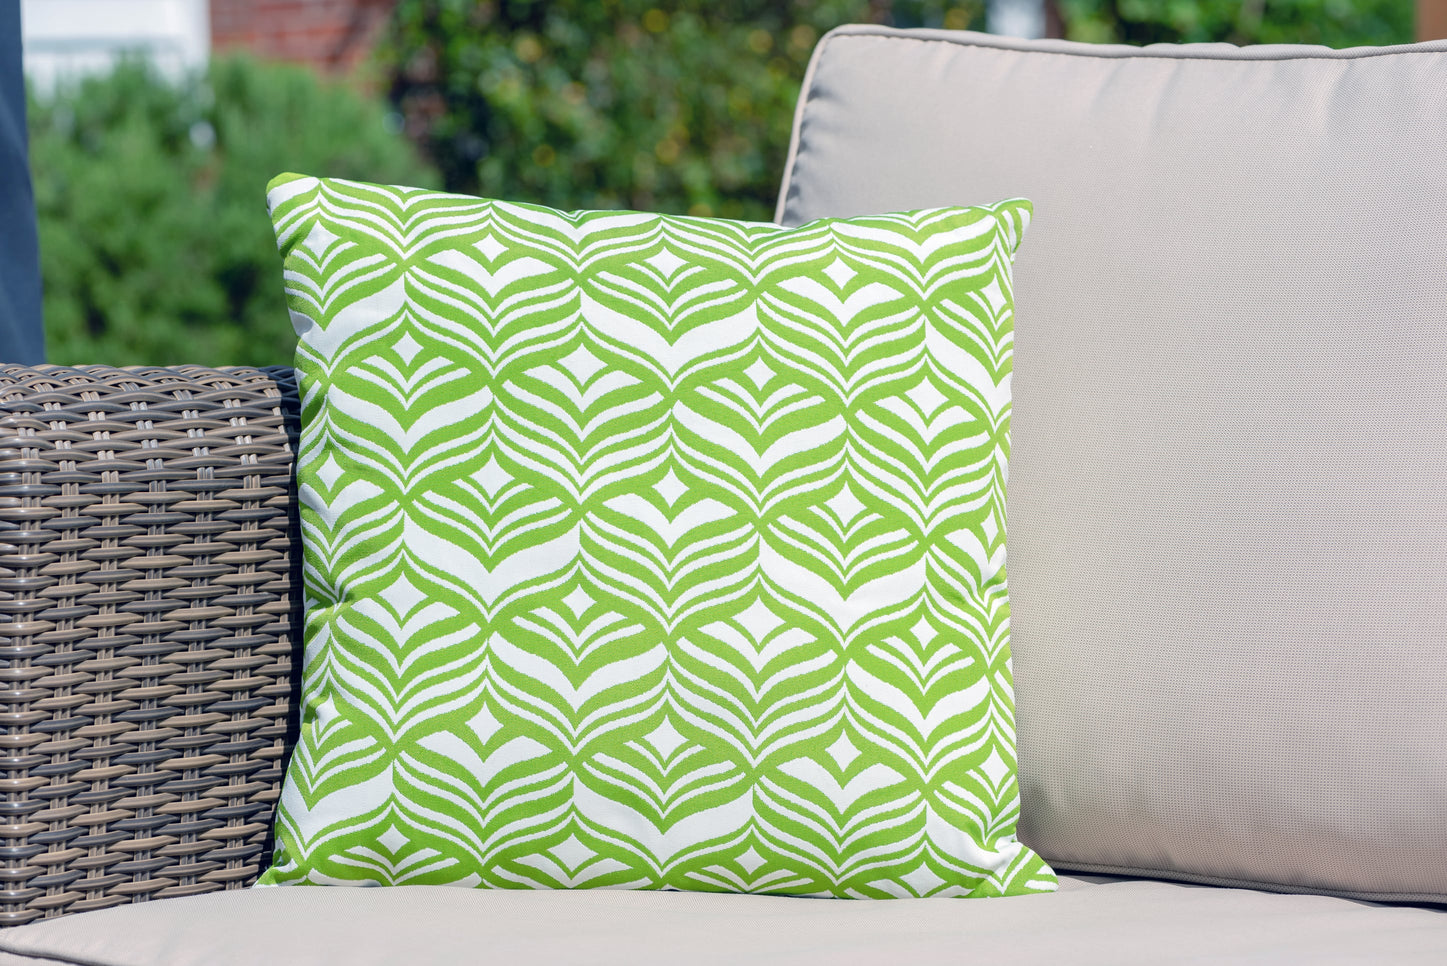 Armadillo Sun waterproof cushion in green and white tulip pattern